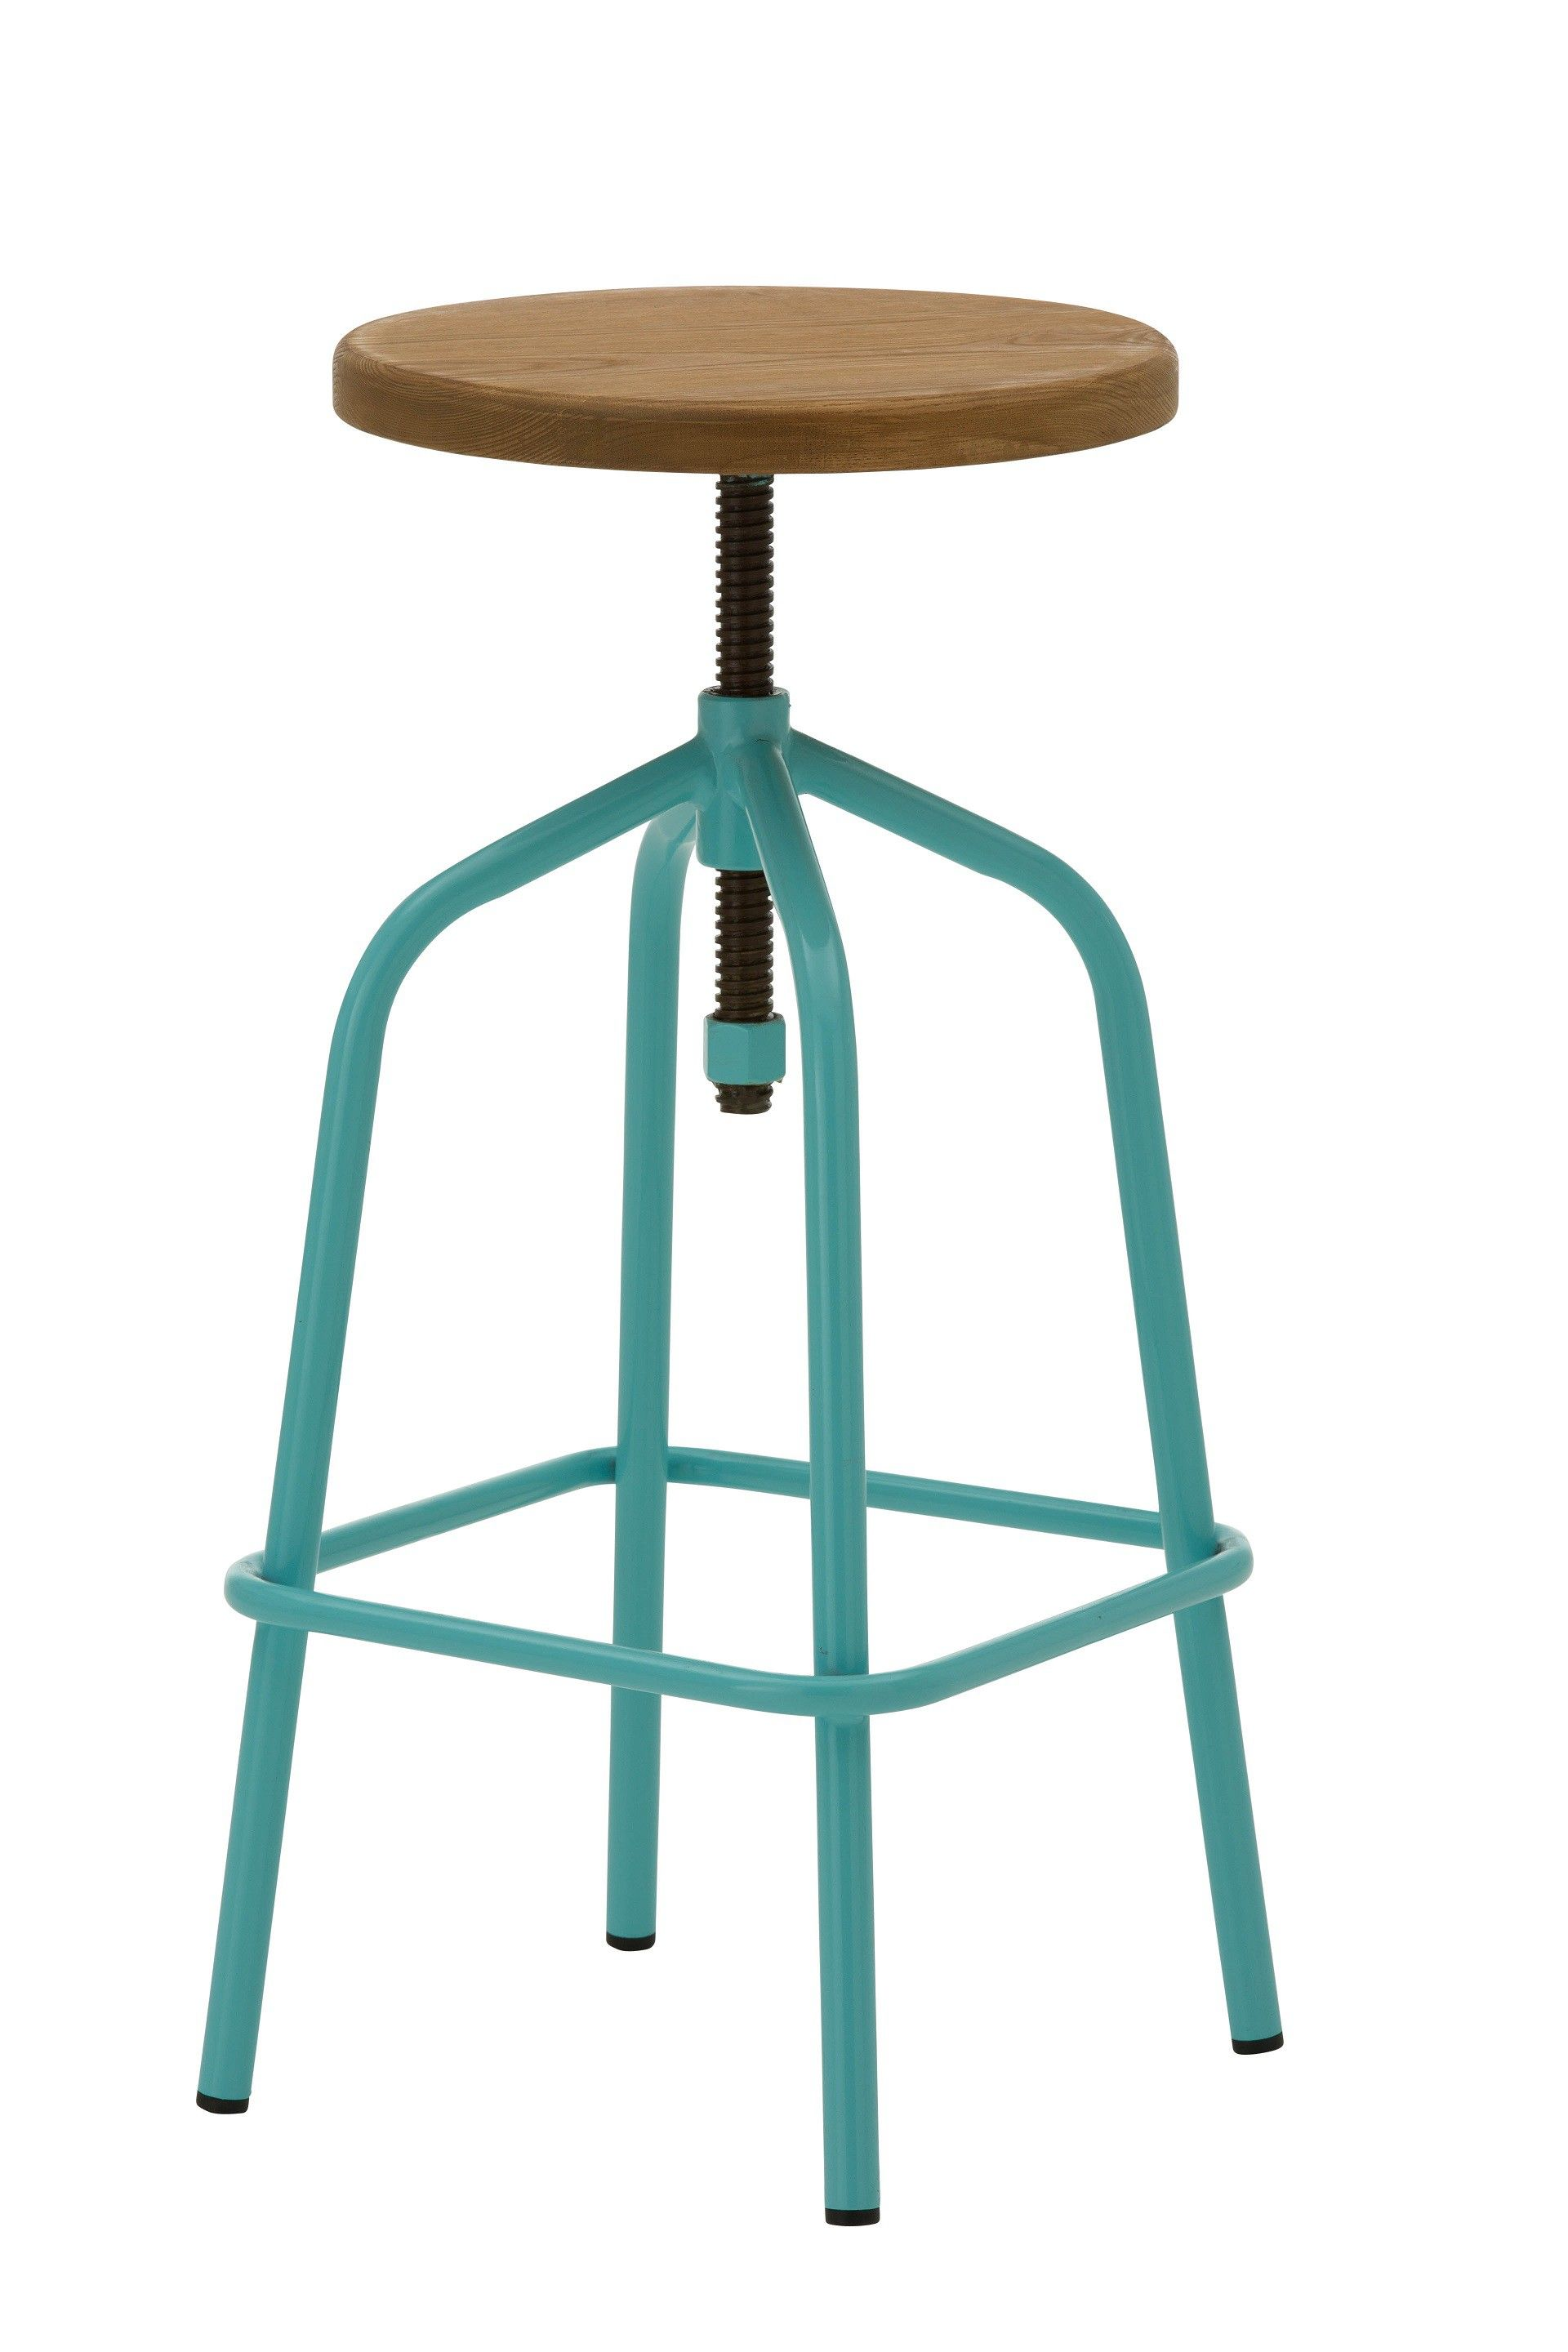 iron blue prod pack home dining com office ostkcdn stools b counter stool furniture chair united sears of src bar